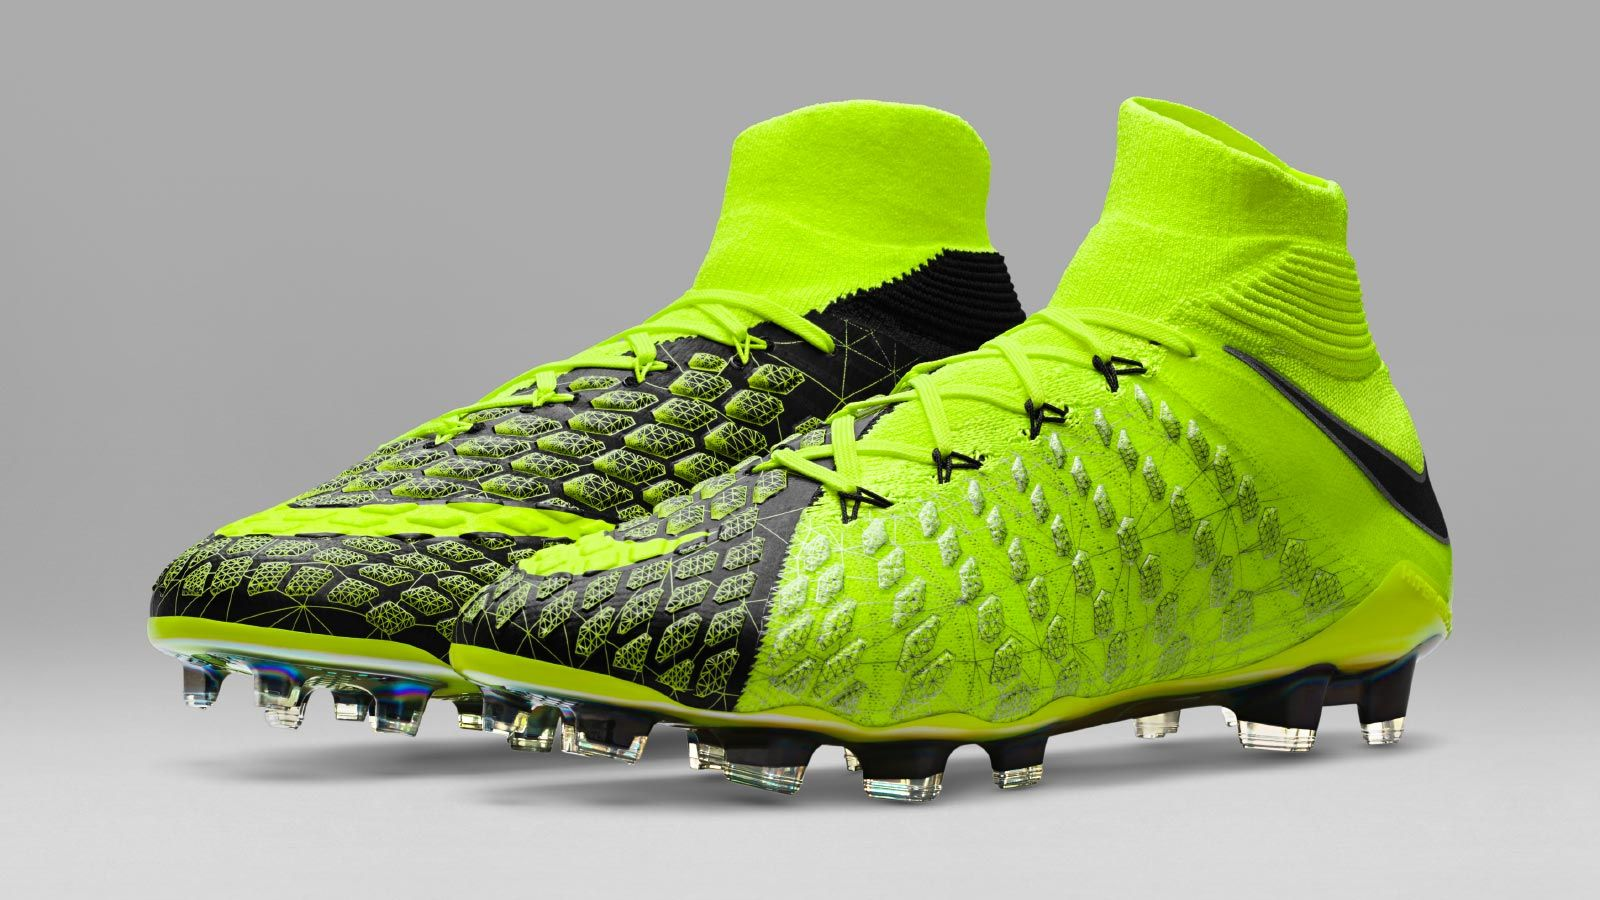 finest selection a50db 459af The limited-edition Nike Hypervenom Phantom III EA Sports boots introduce a  striking design, inspired by Real Player Motion technology.